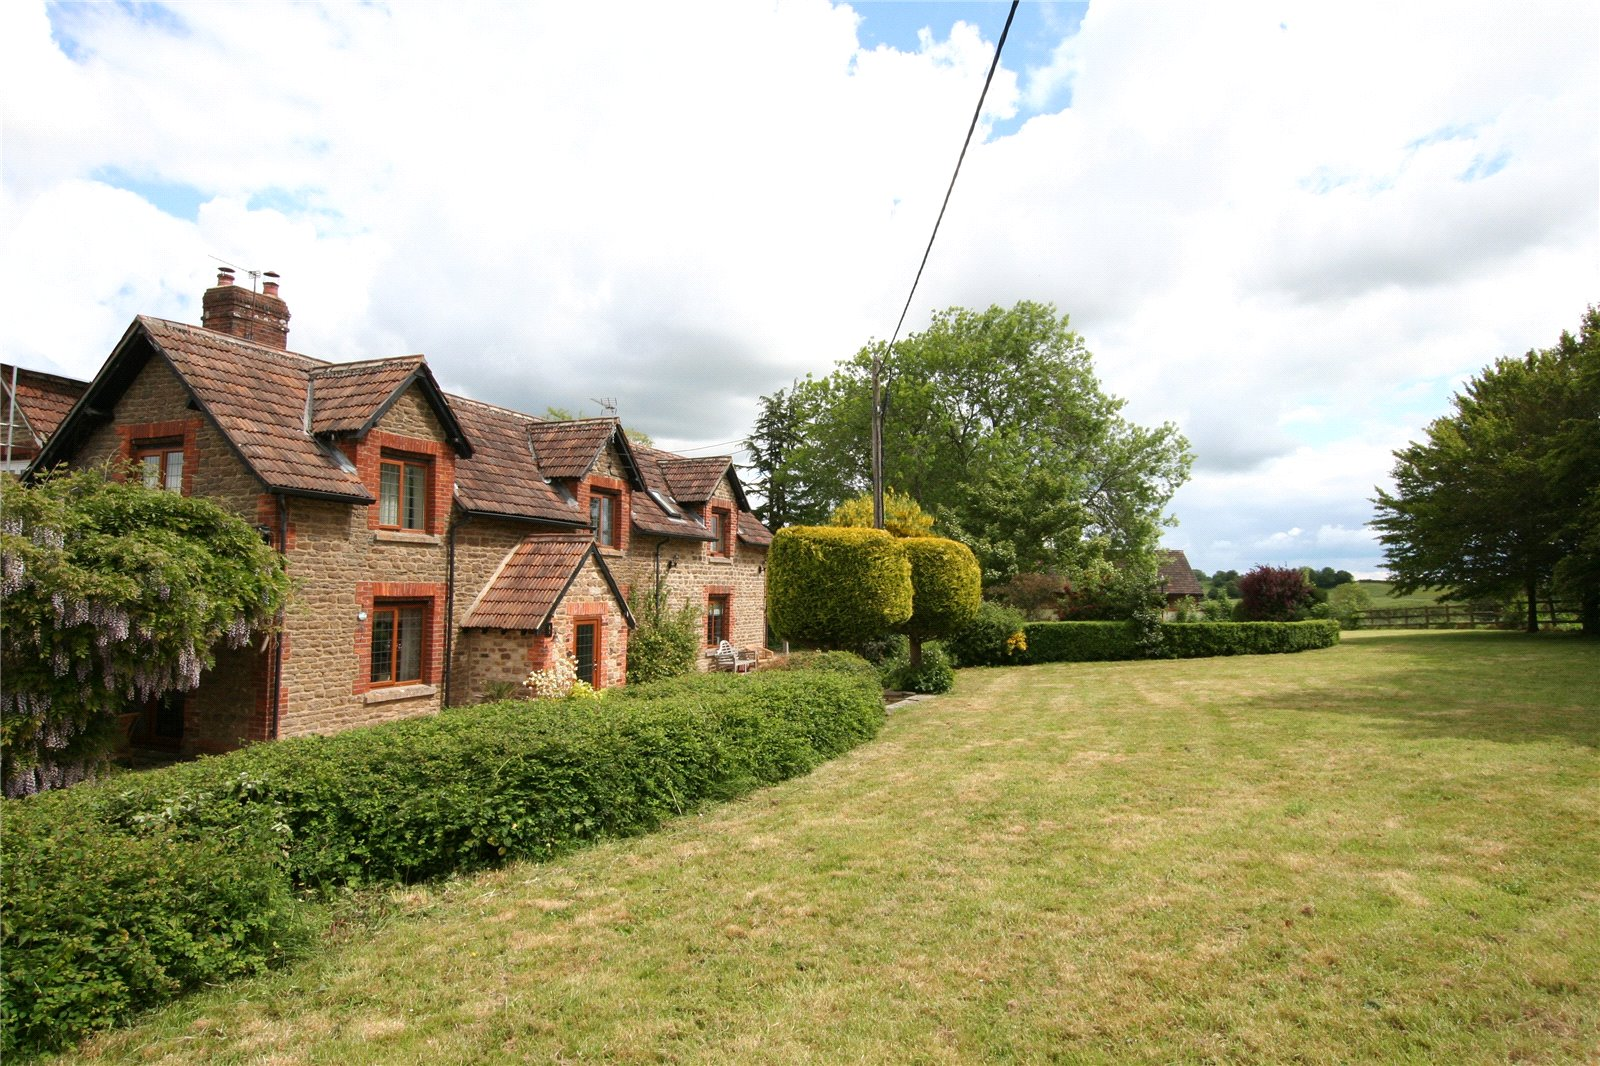 Cherry Tree Cottage, 26 Spirthill, Calne, Wiltshire